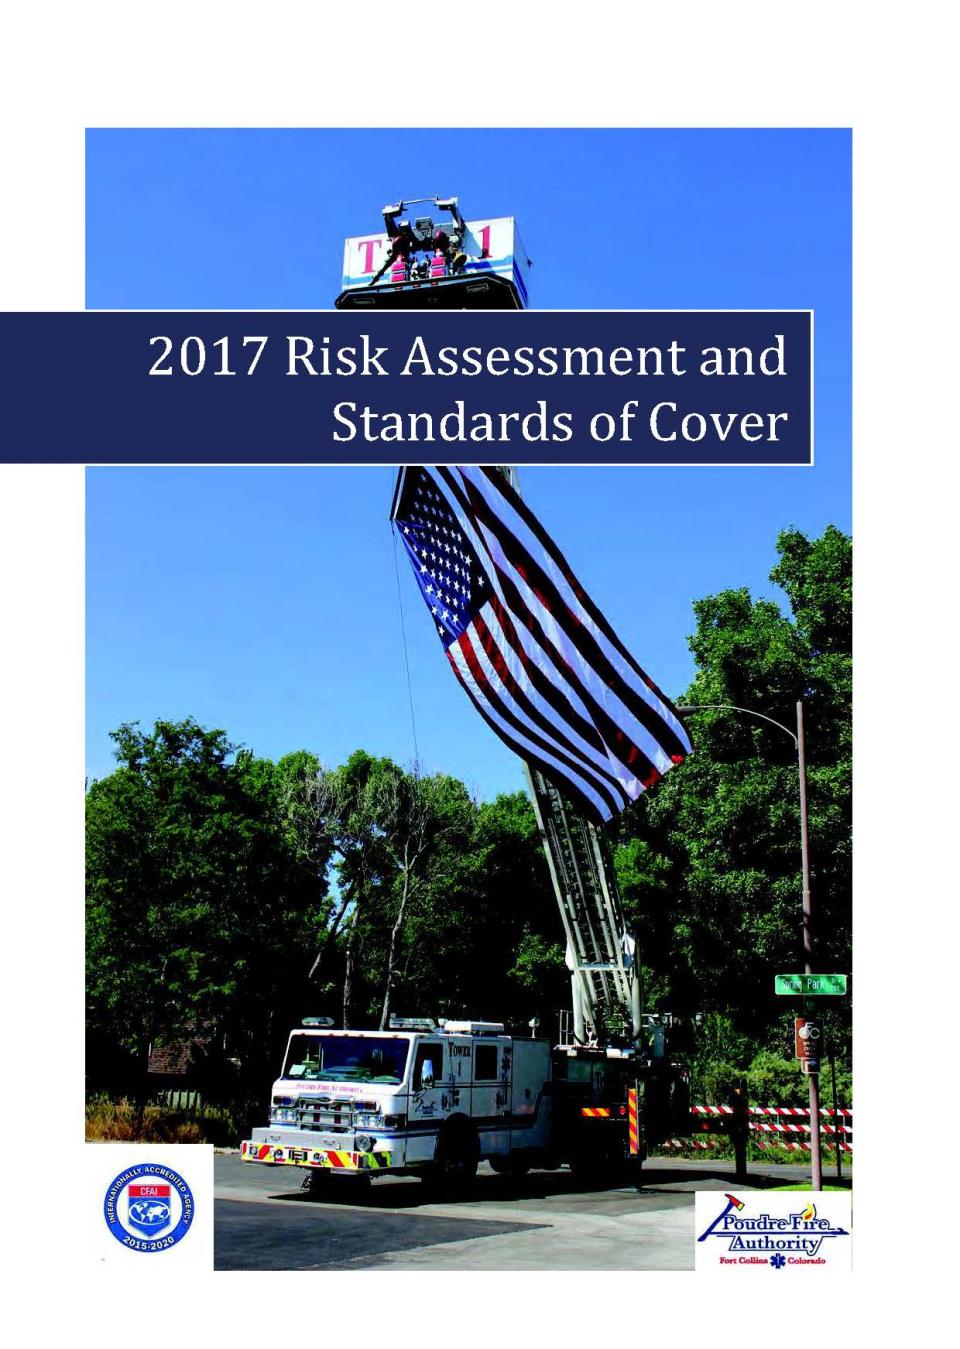 Poudre Fire Authority 2017 Risk Assessment and Standards of Cover Front Page